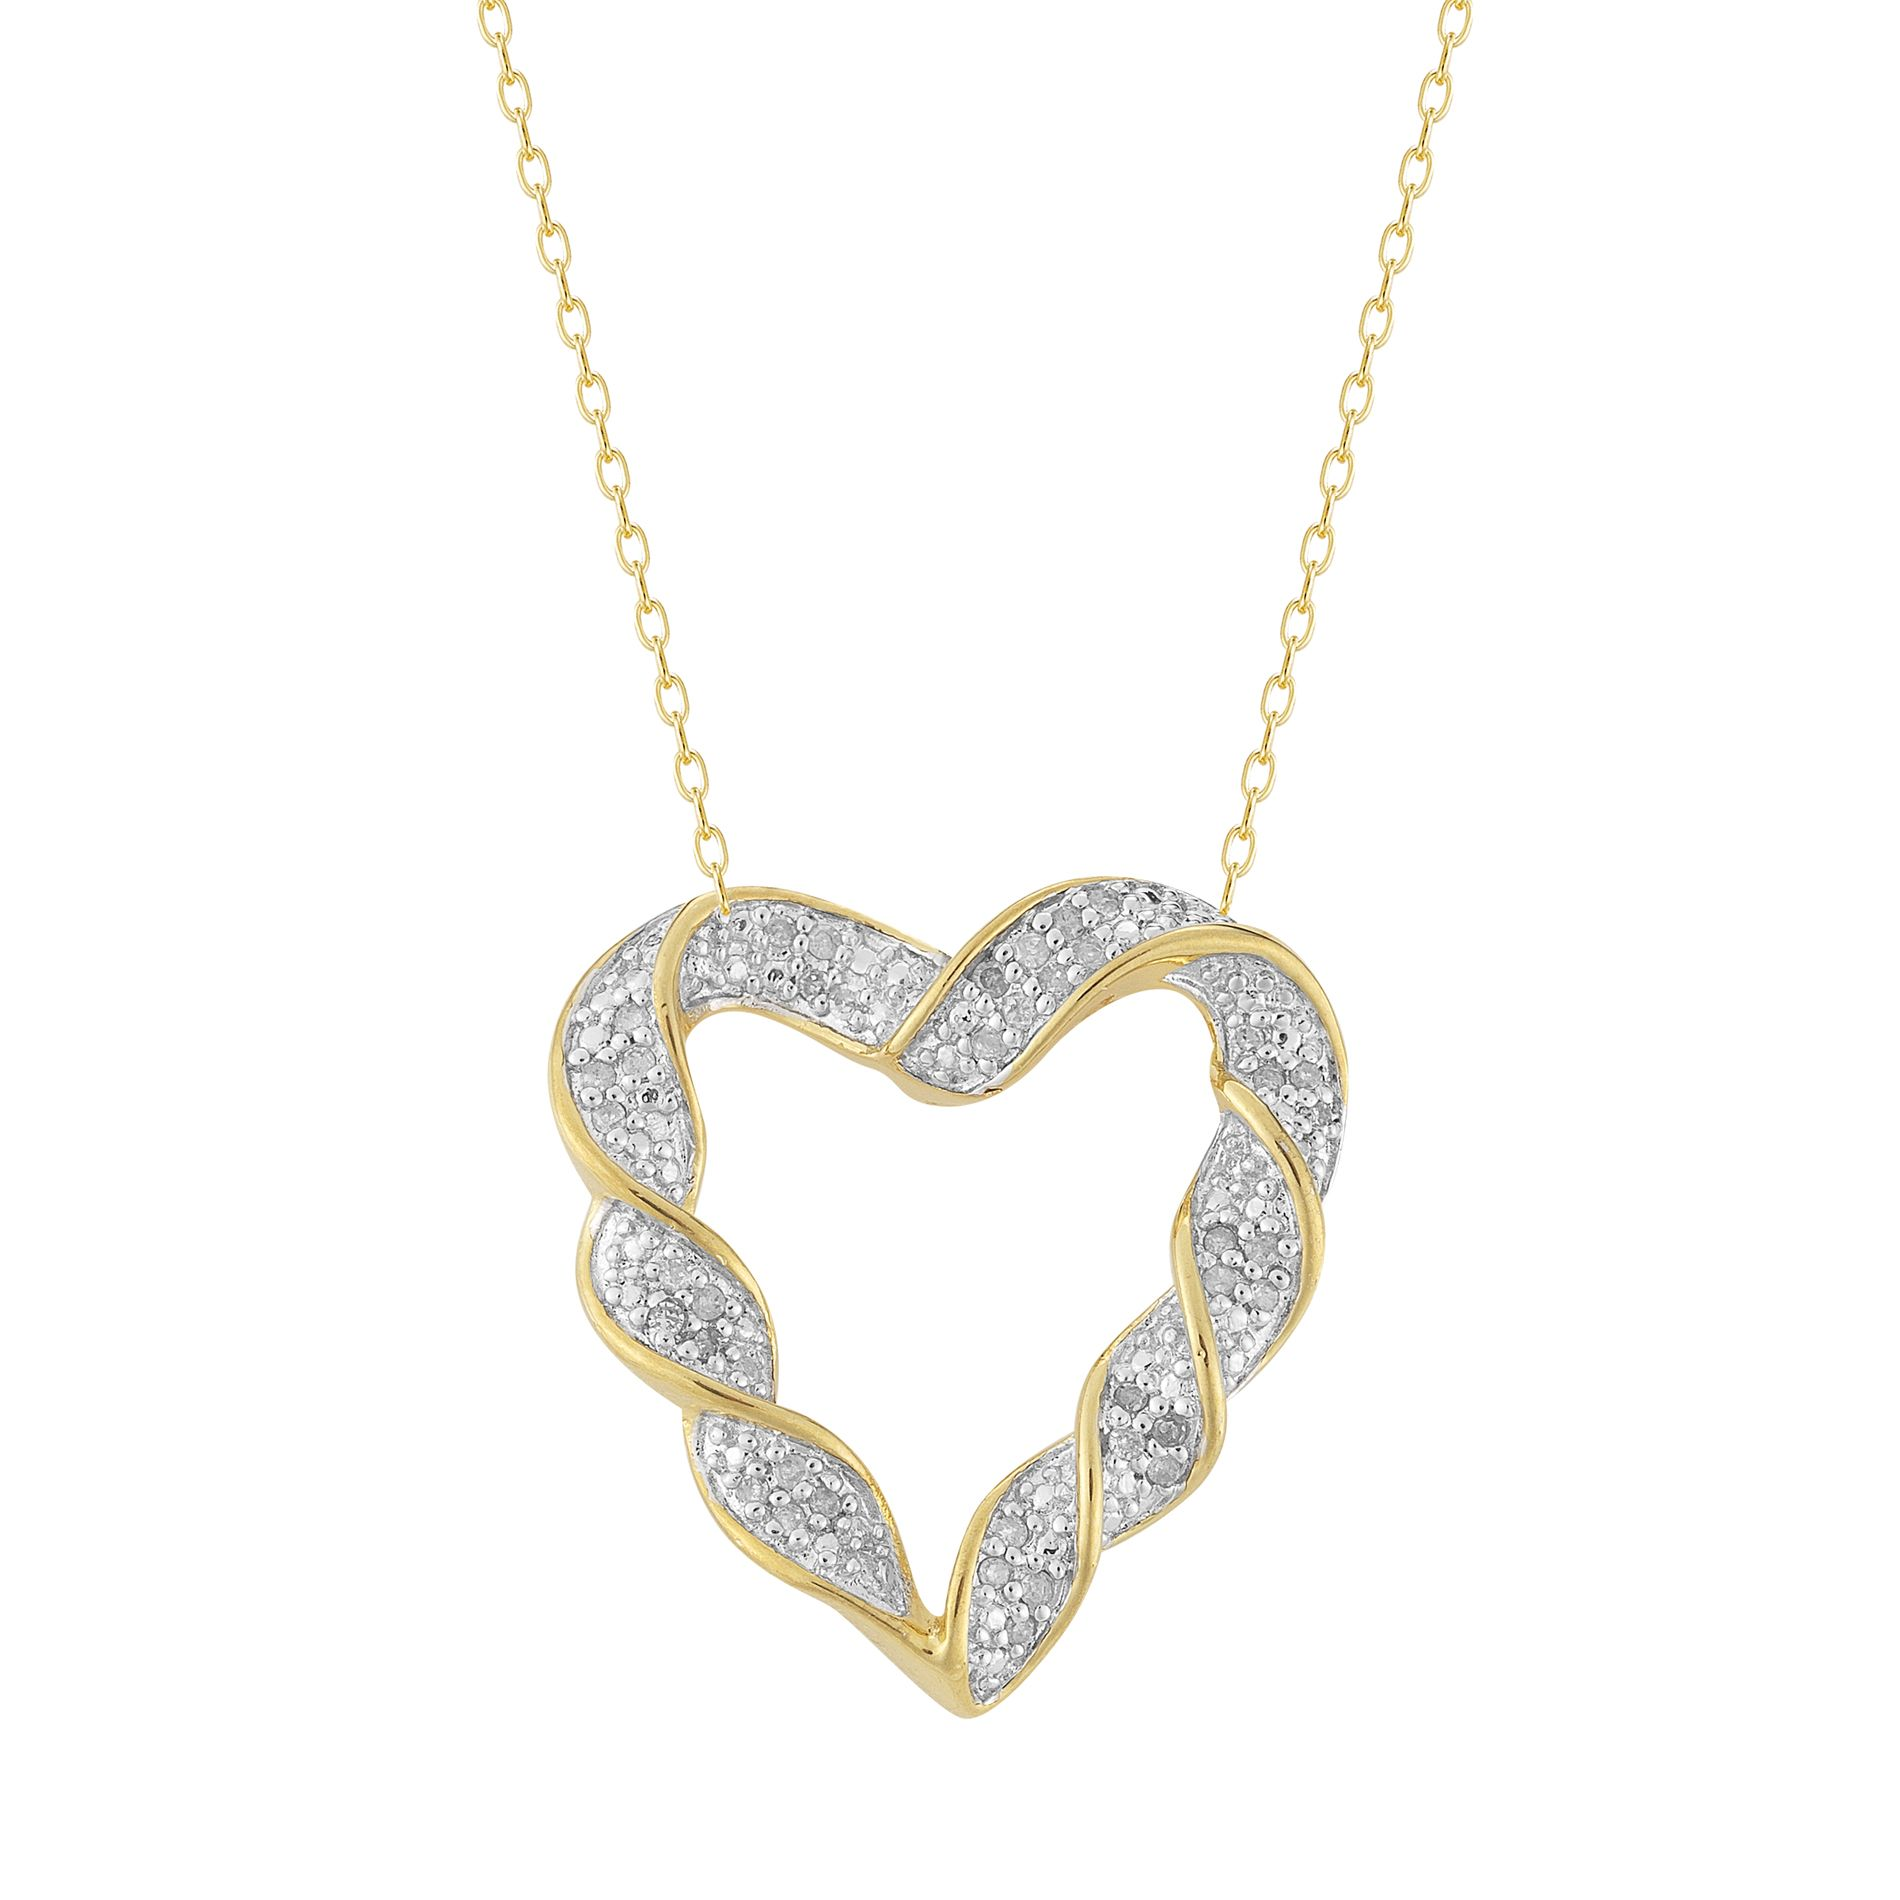 The Avance Collection: 18Kt Gold Over Sterling Silver 1/5Cttw Diamond Hear